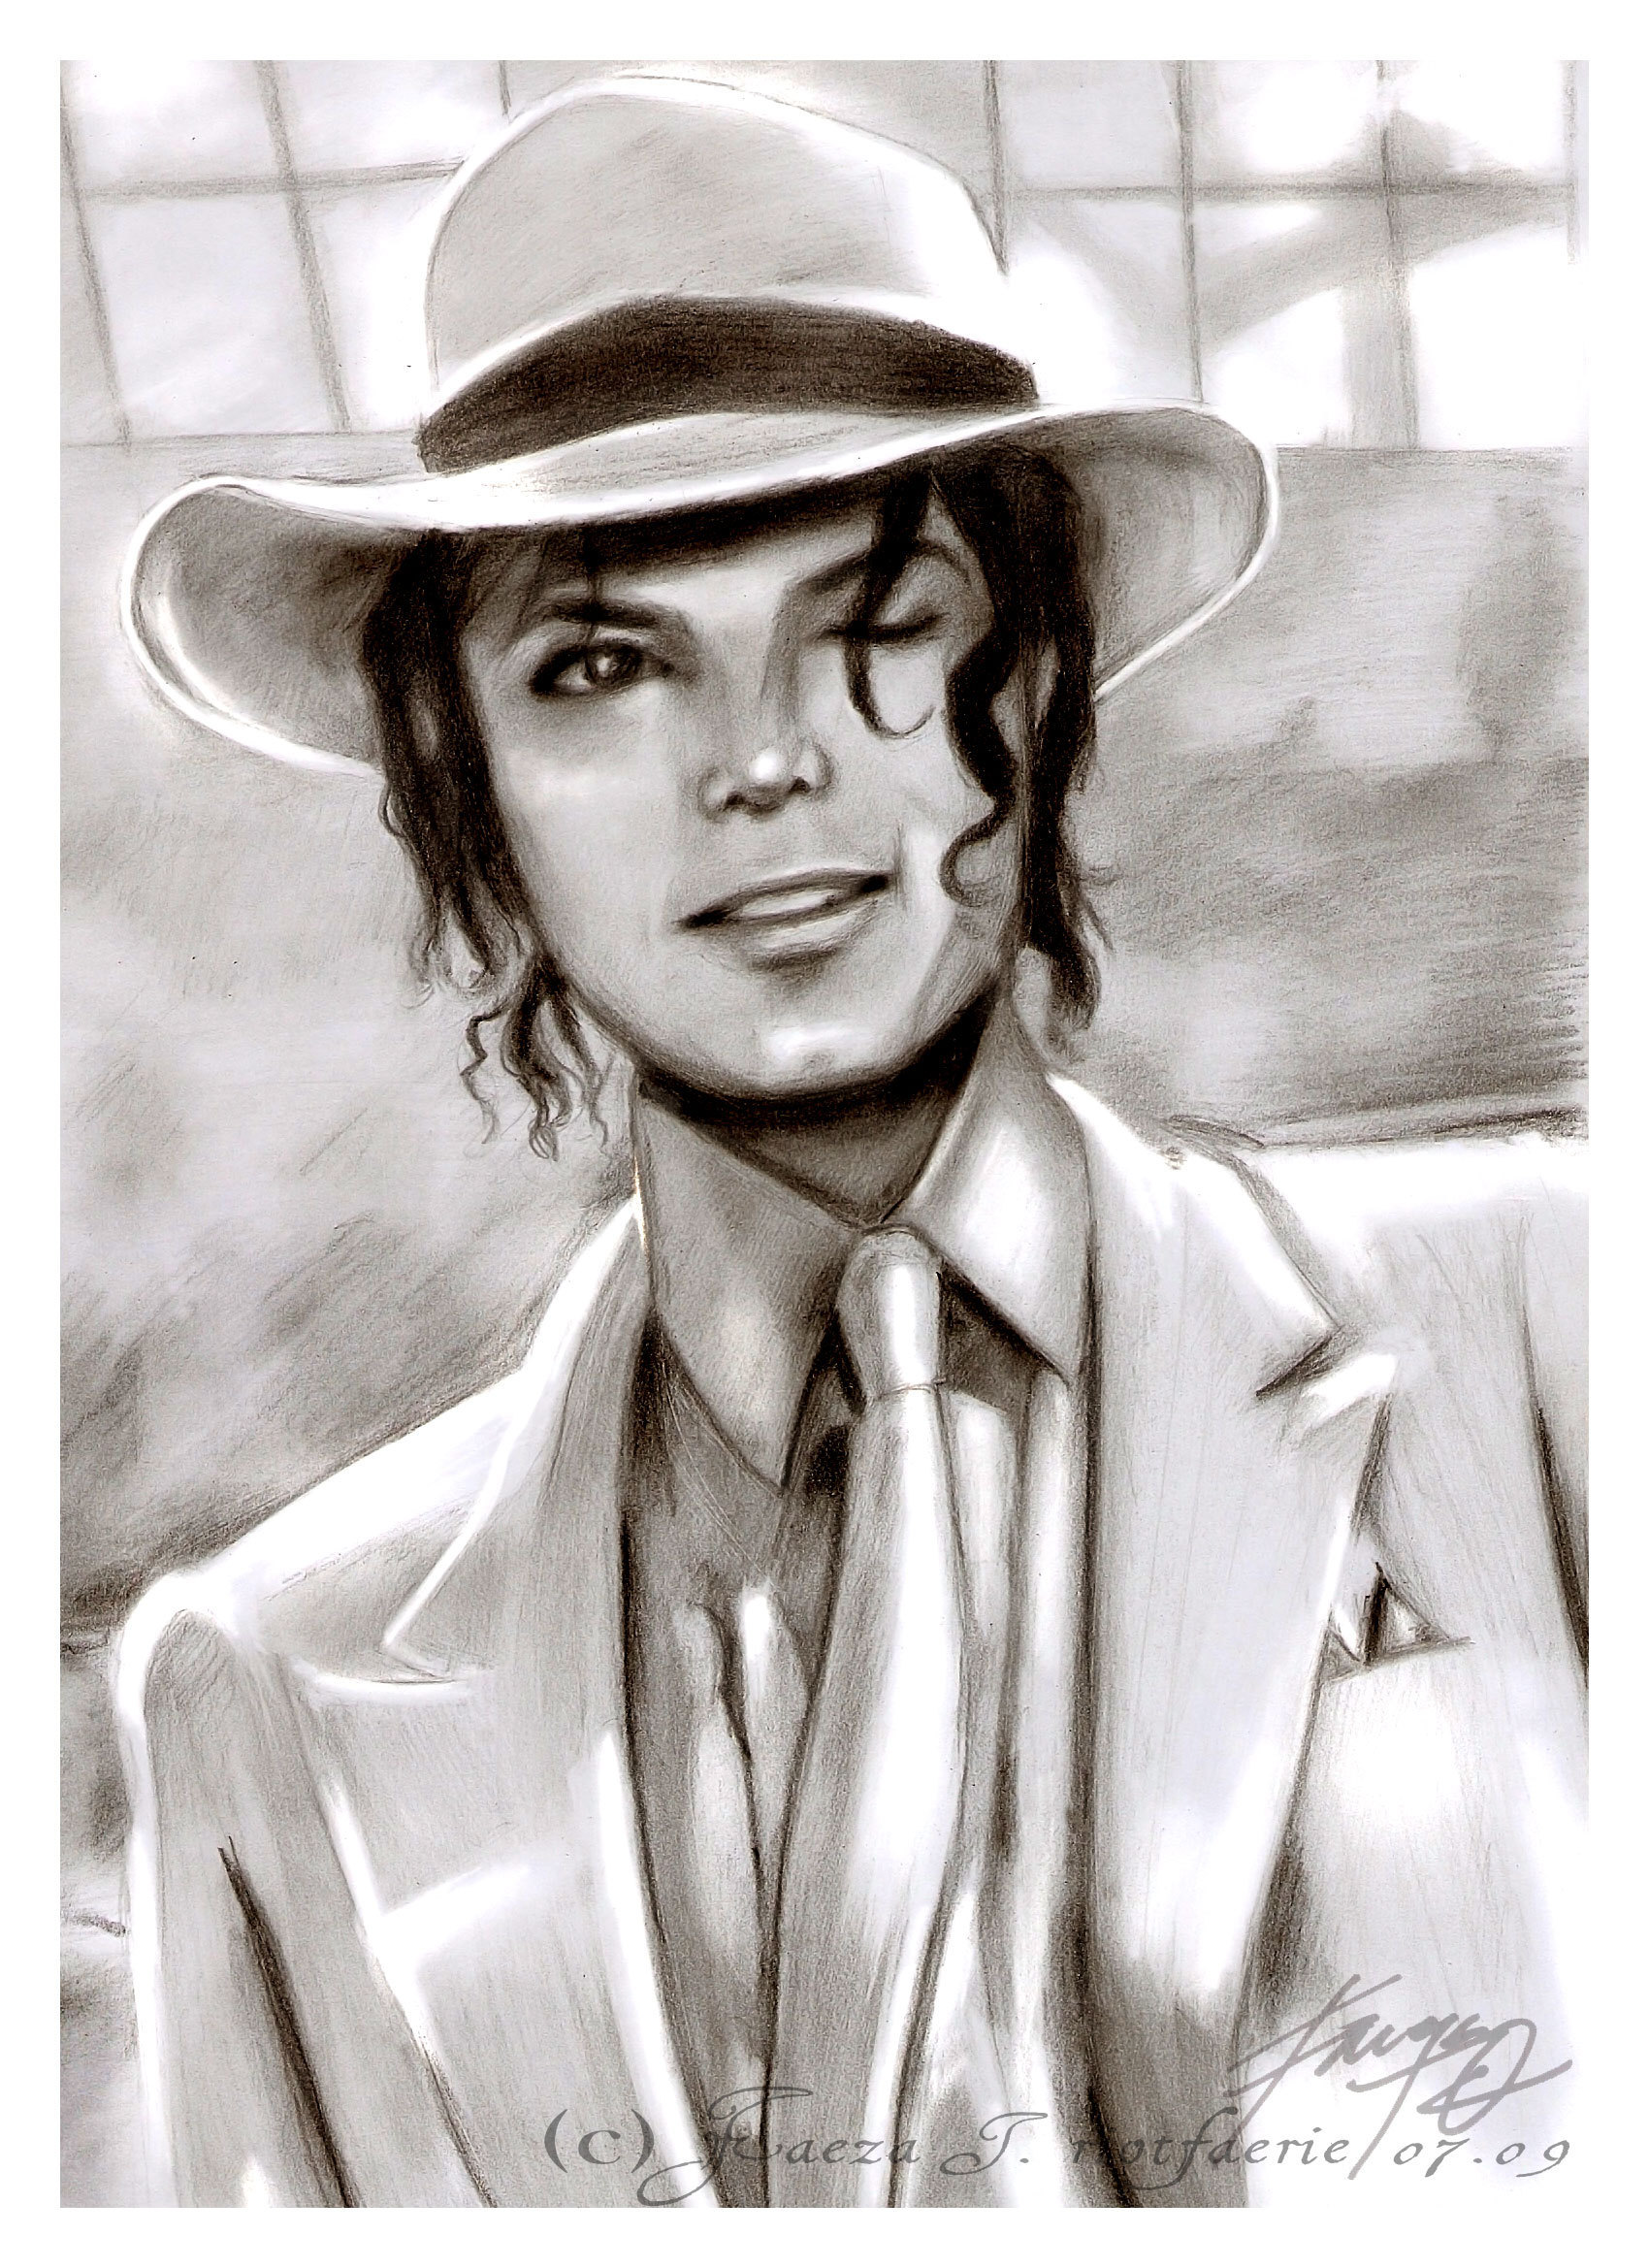 michael jackson sketch smooth - photo #33